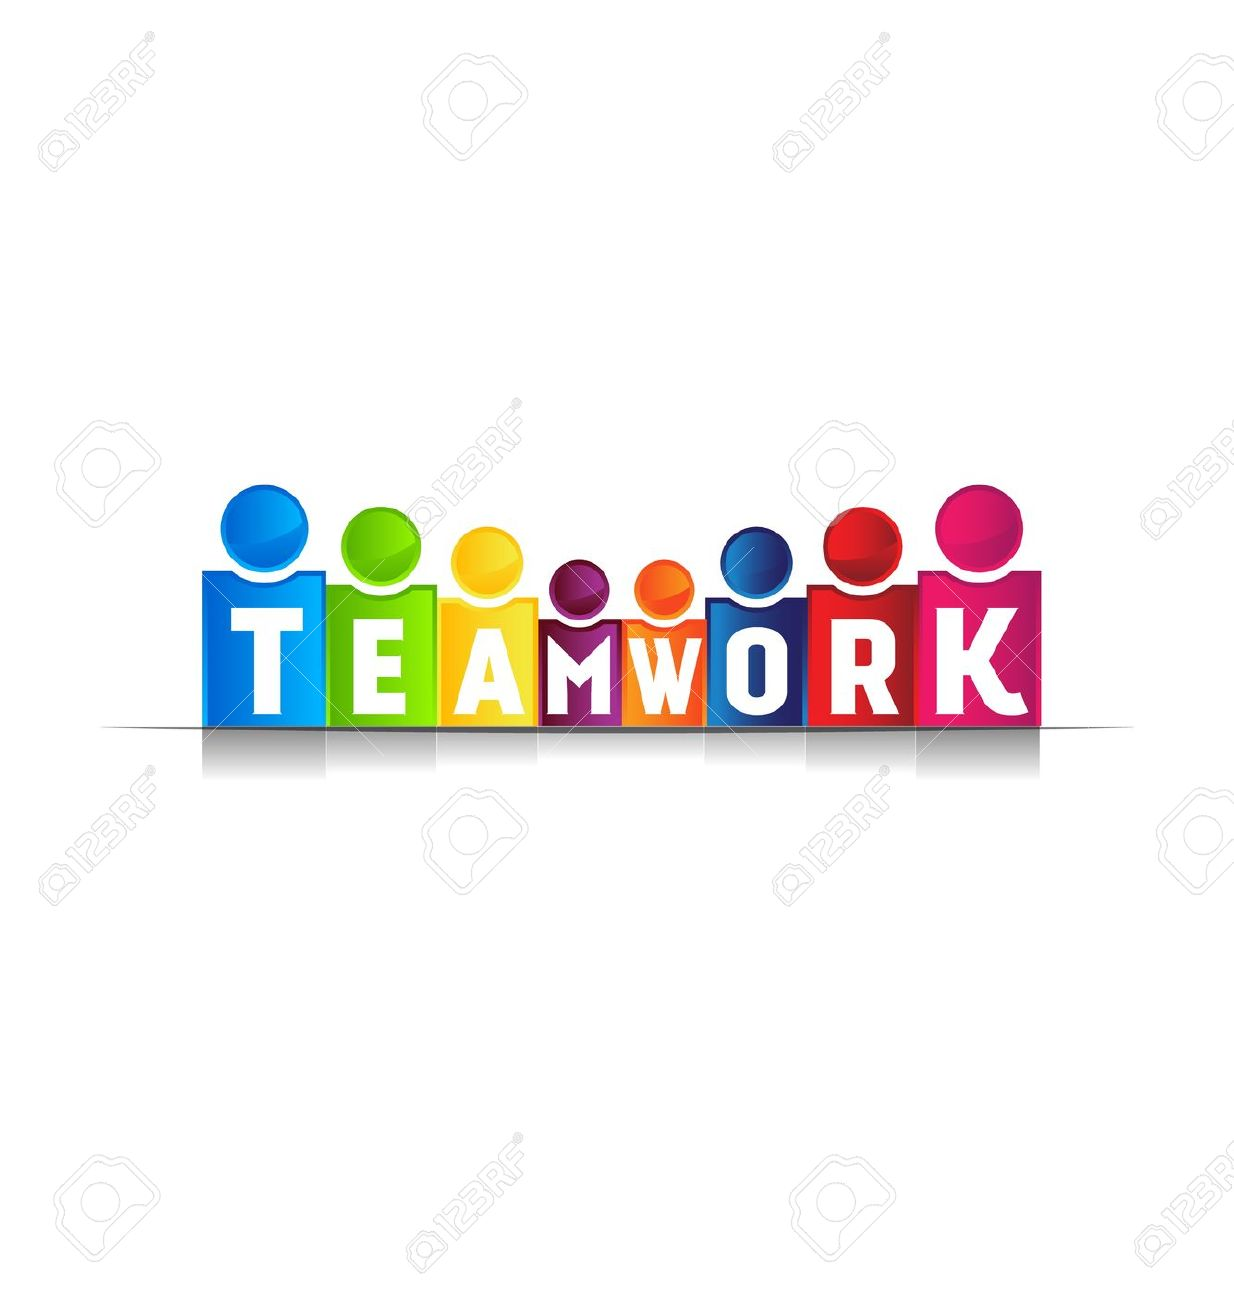 Office Teamwork Stock Vector Illustration